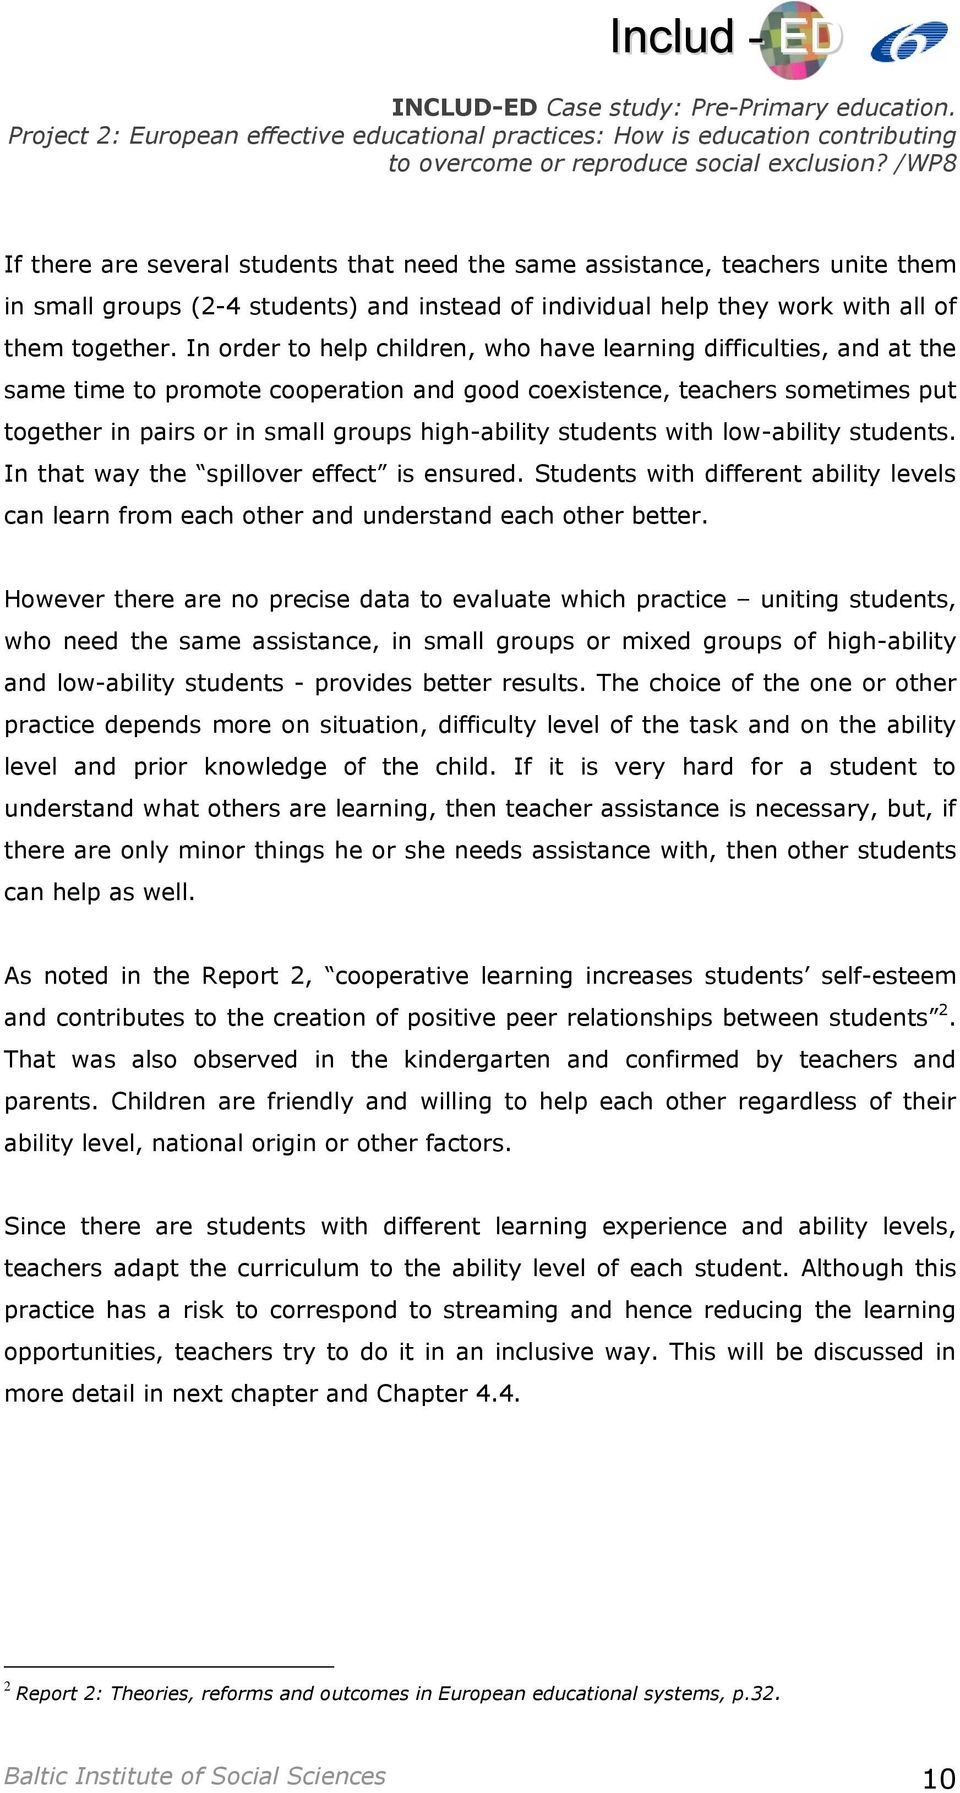 students with low-ability students. In that way the spillover effect is ensured. Students with different ability levels can learn from each other and understand each other better.